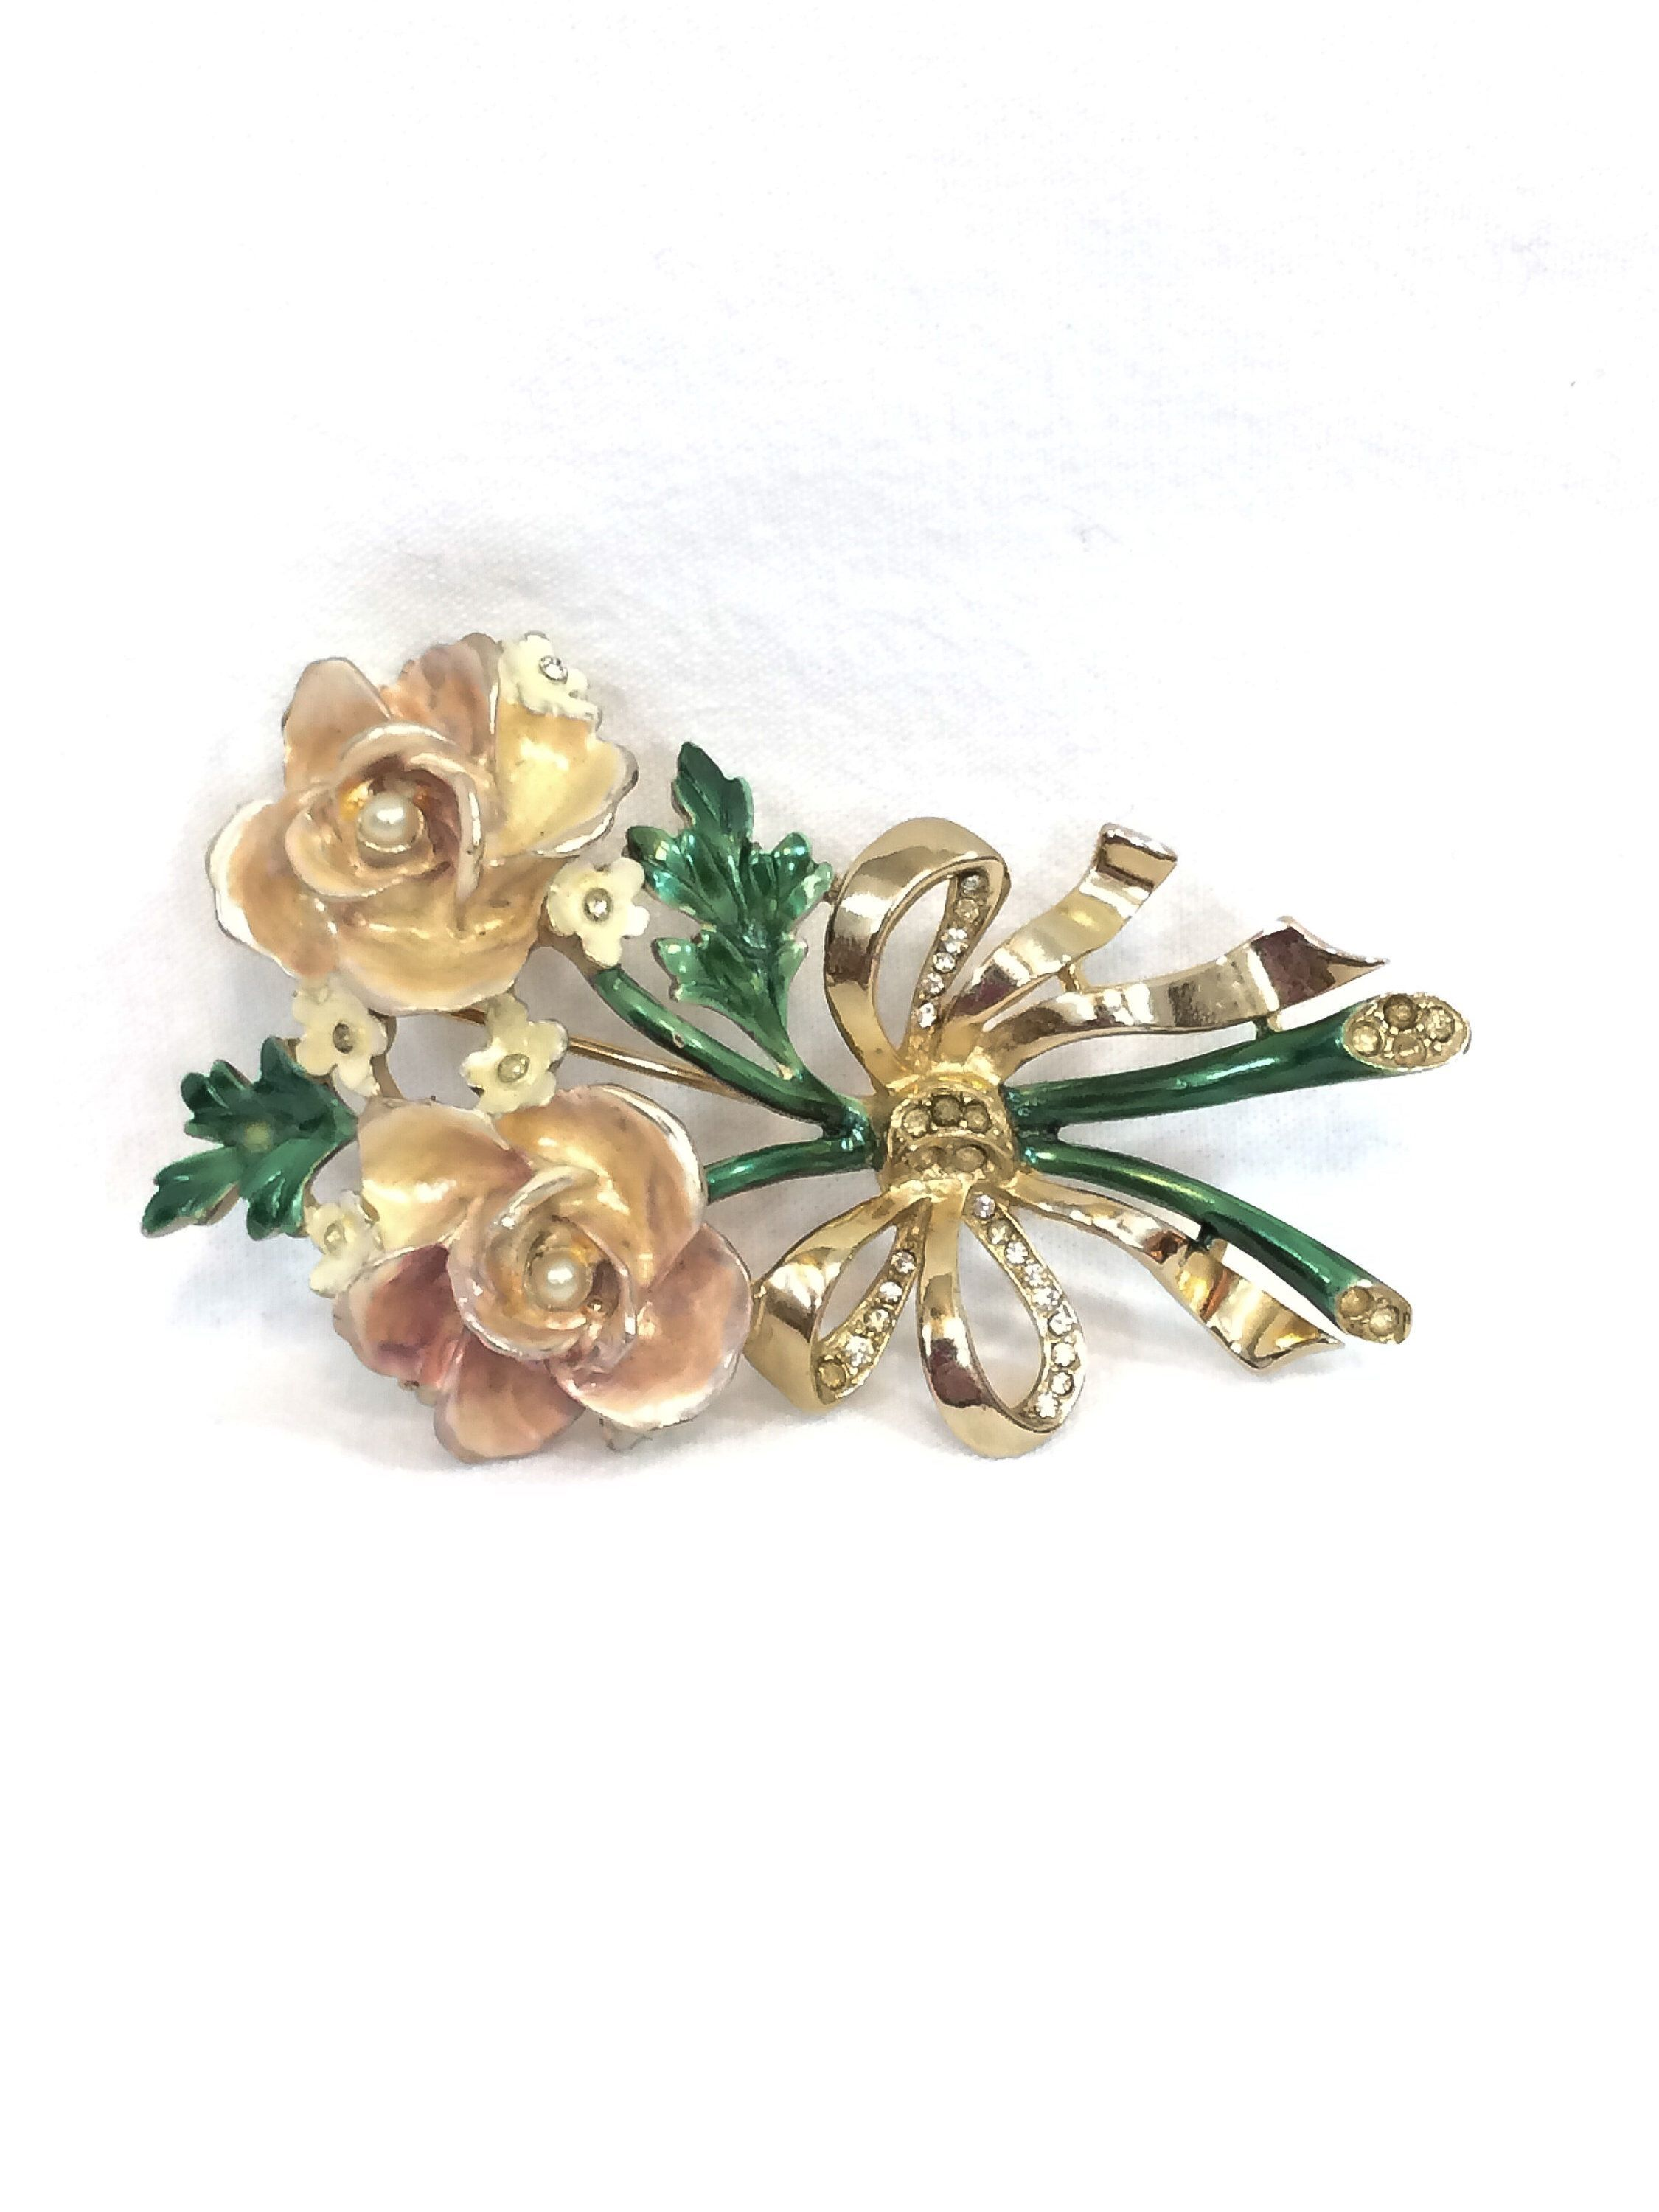 Vintage Brooch From 1940 Bows And Faux Pearls Pins & Brooches